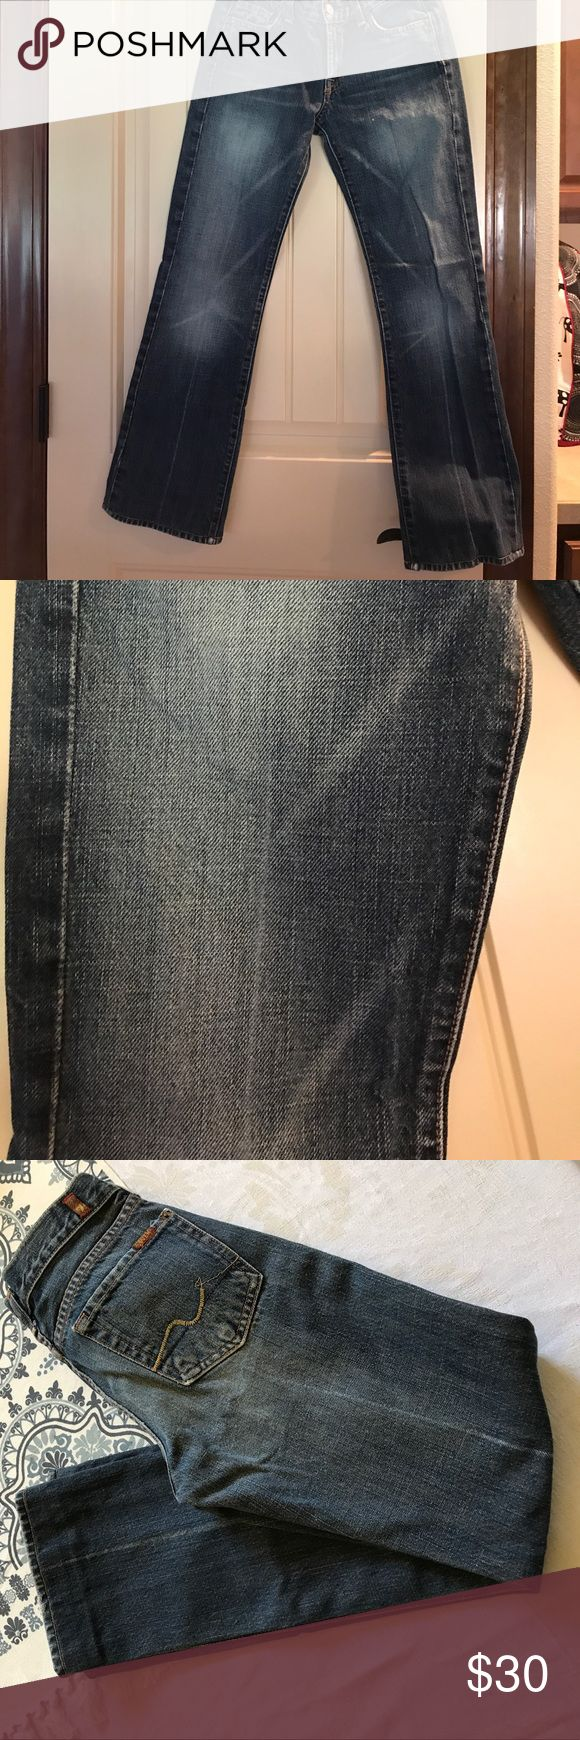 Seven for all mankind bootcut jeans Seven for all man kind woman size 26 bootcut jeans, inseam is 28 inches, bootcut opening 7 inches, lightly distressed, great condition, close up picture shoes the wash closet up Seven7 Jeans Boot Cut